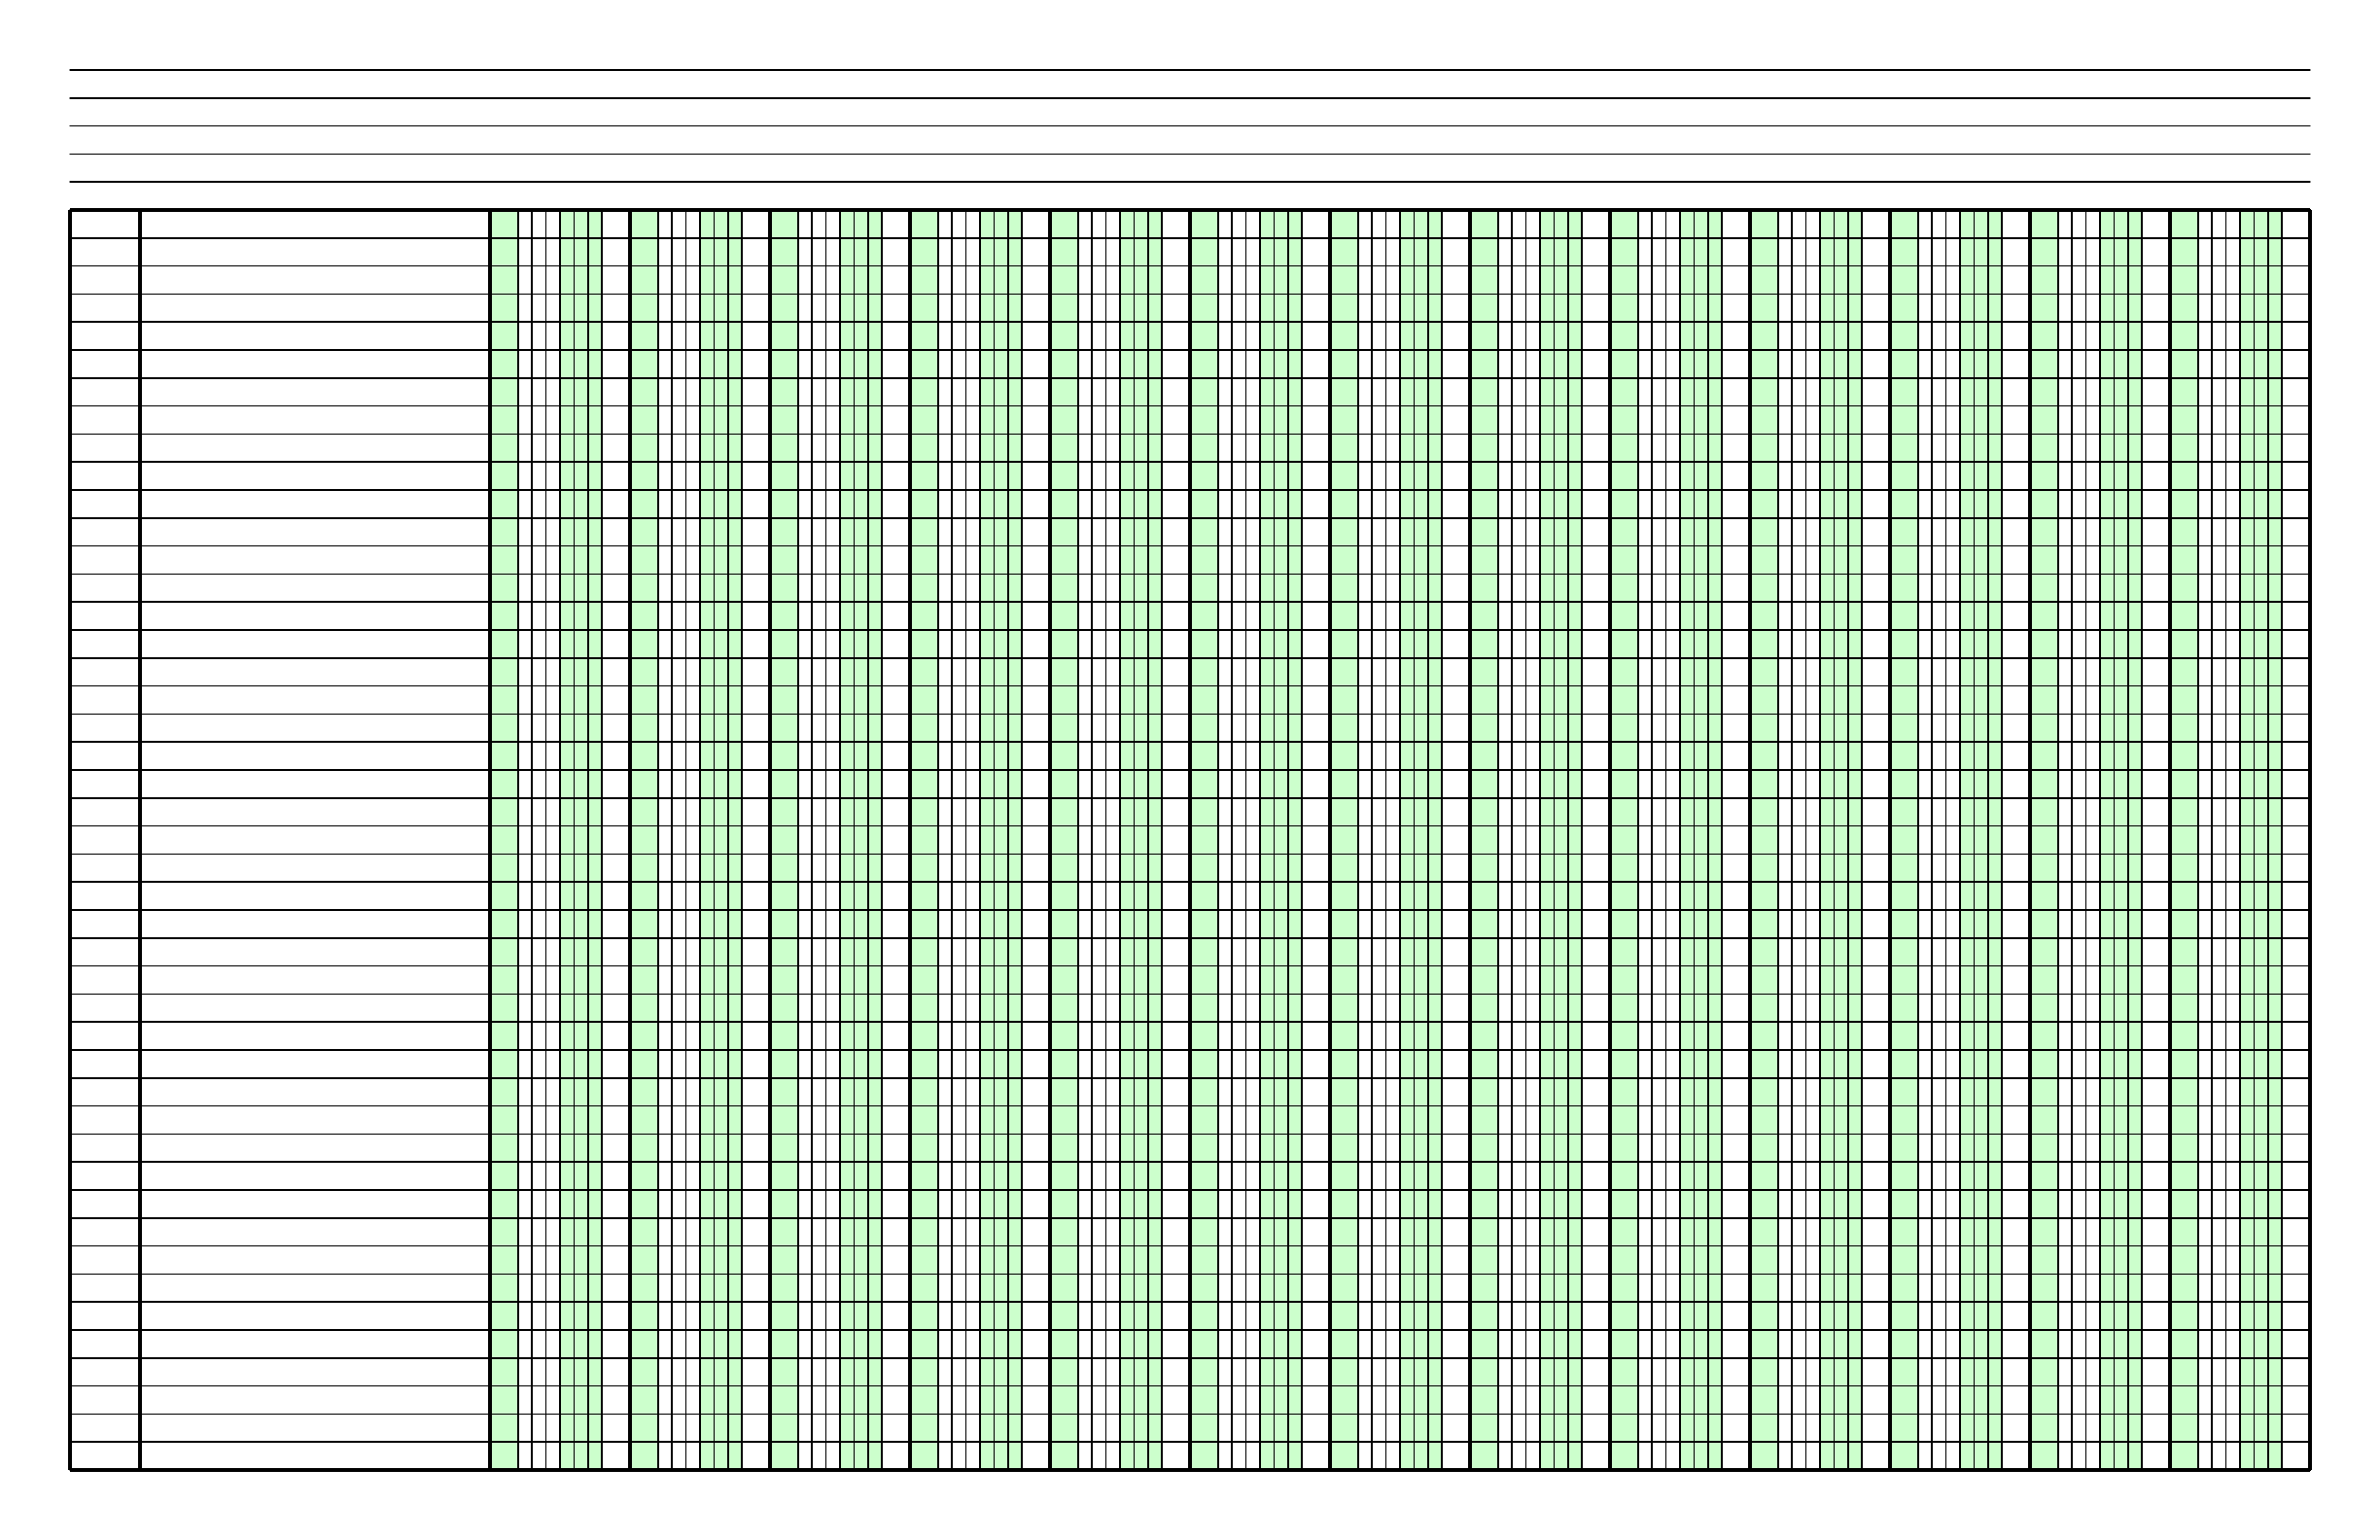 Columnar Paper With Thirteen Columns On Ledger Sized Paper